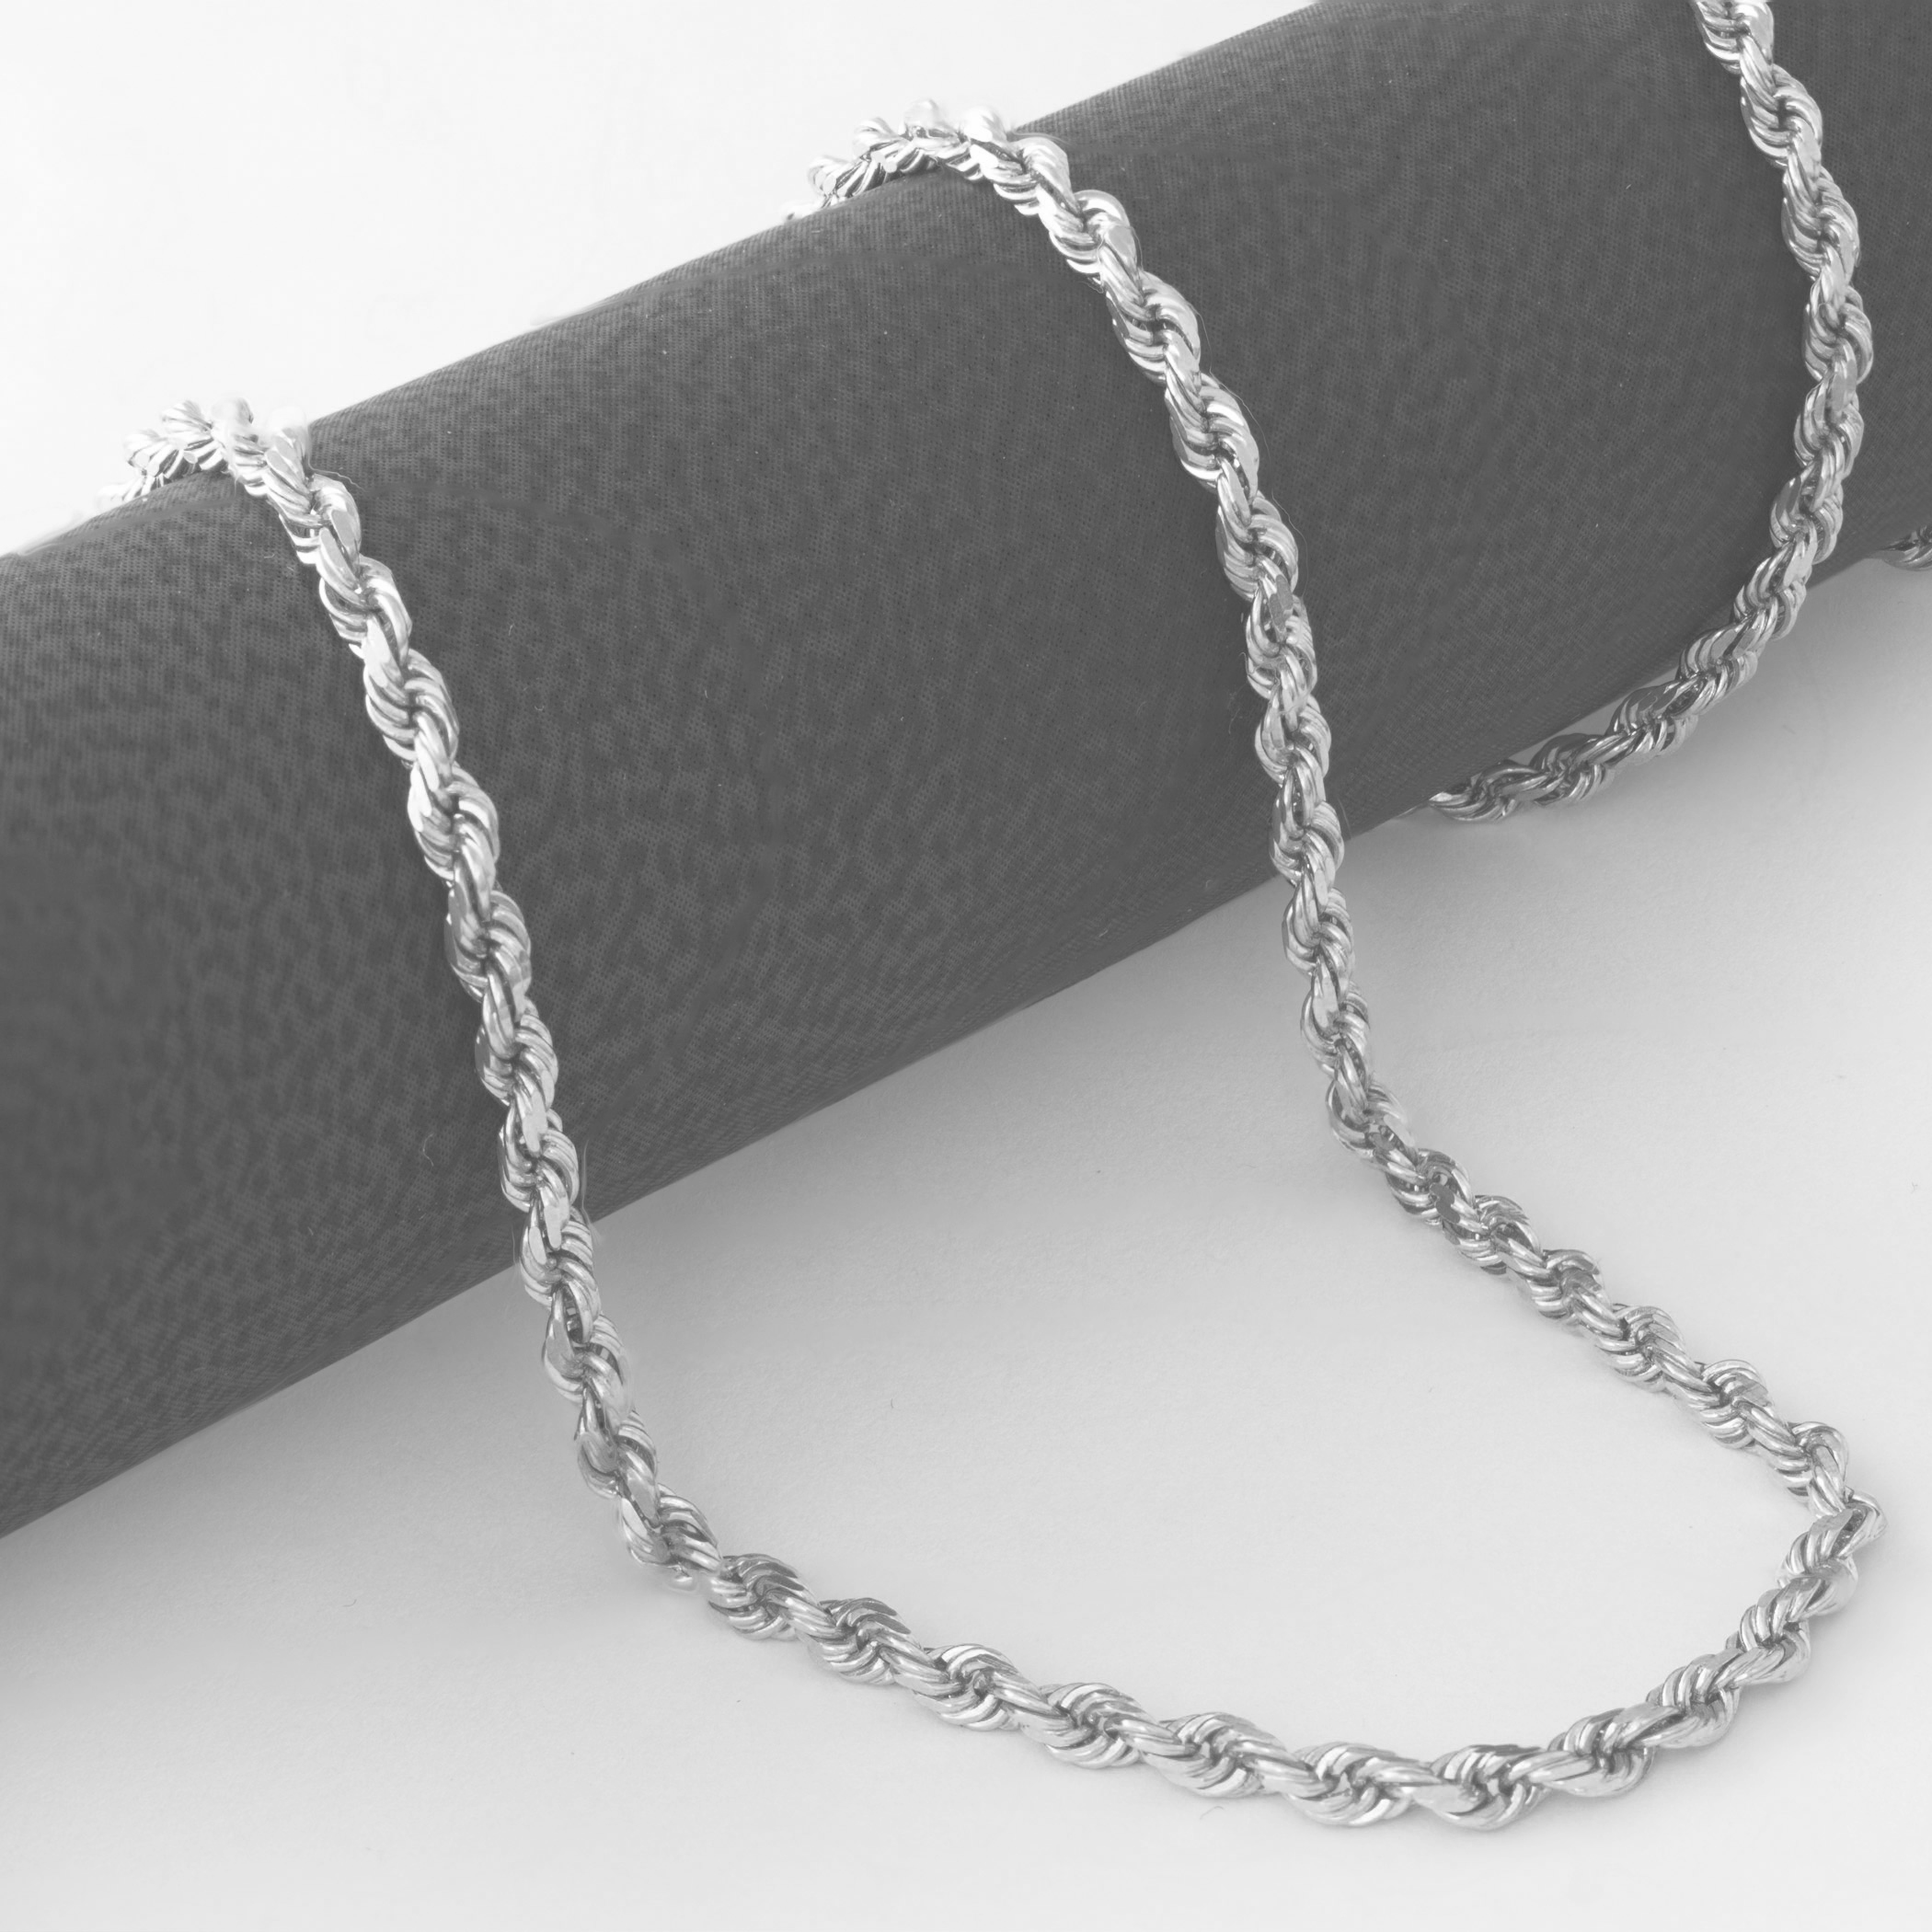 14K-White-Gold-Italian-2-5mm-Diamond-Cut-Rope-Chain-Pendant-Necklace-14-034-30-034 thumbnail 18